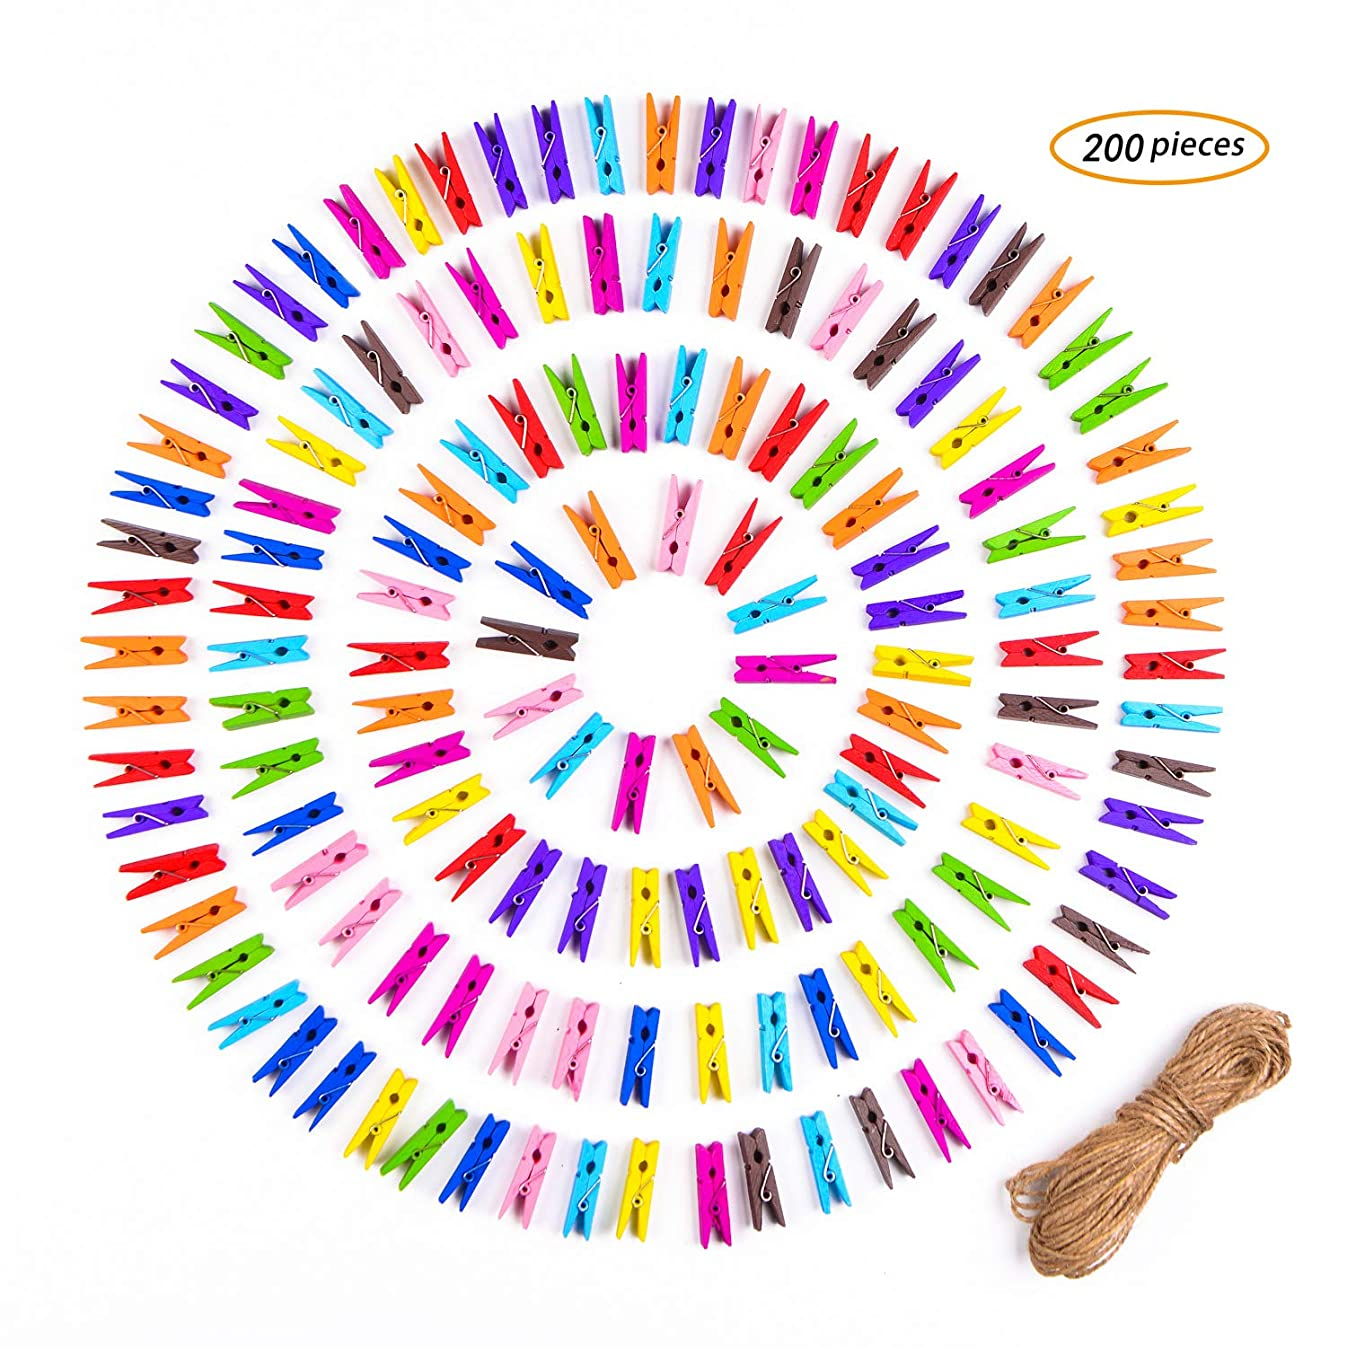 VANCOOL 200 Pieces Mini Natural Wooden Clothespins Photo Paper Peg Pin Craft Clips with Natural Twine